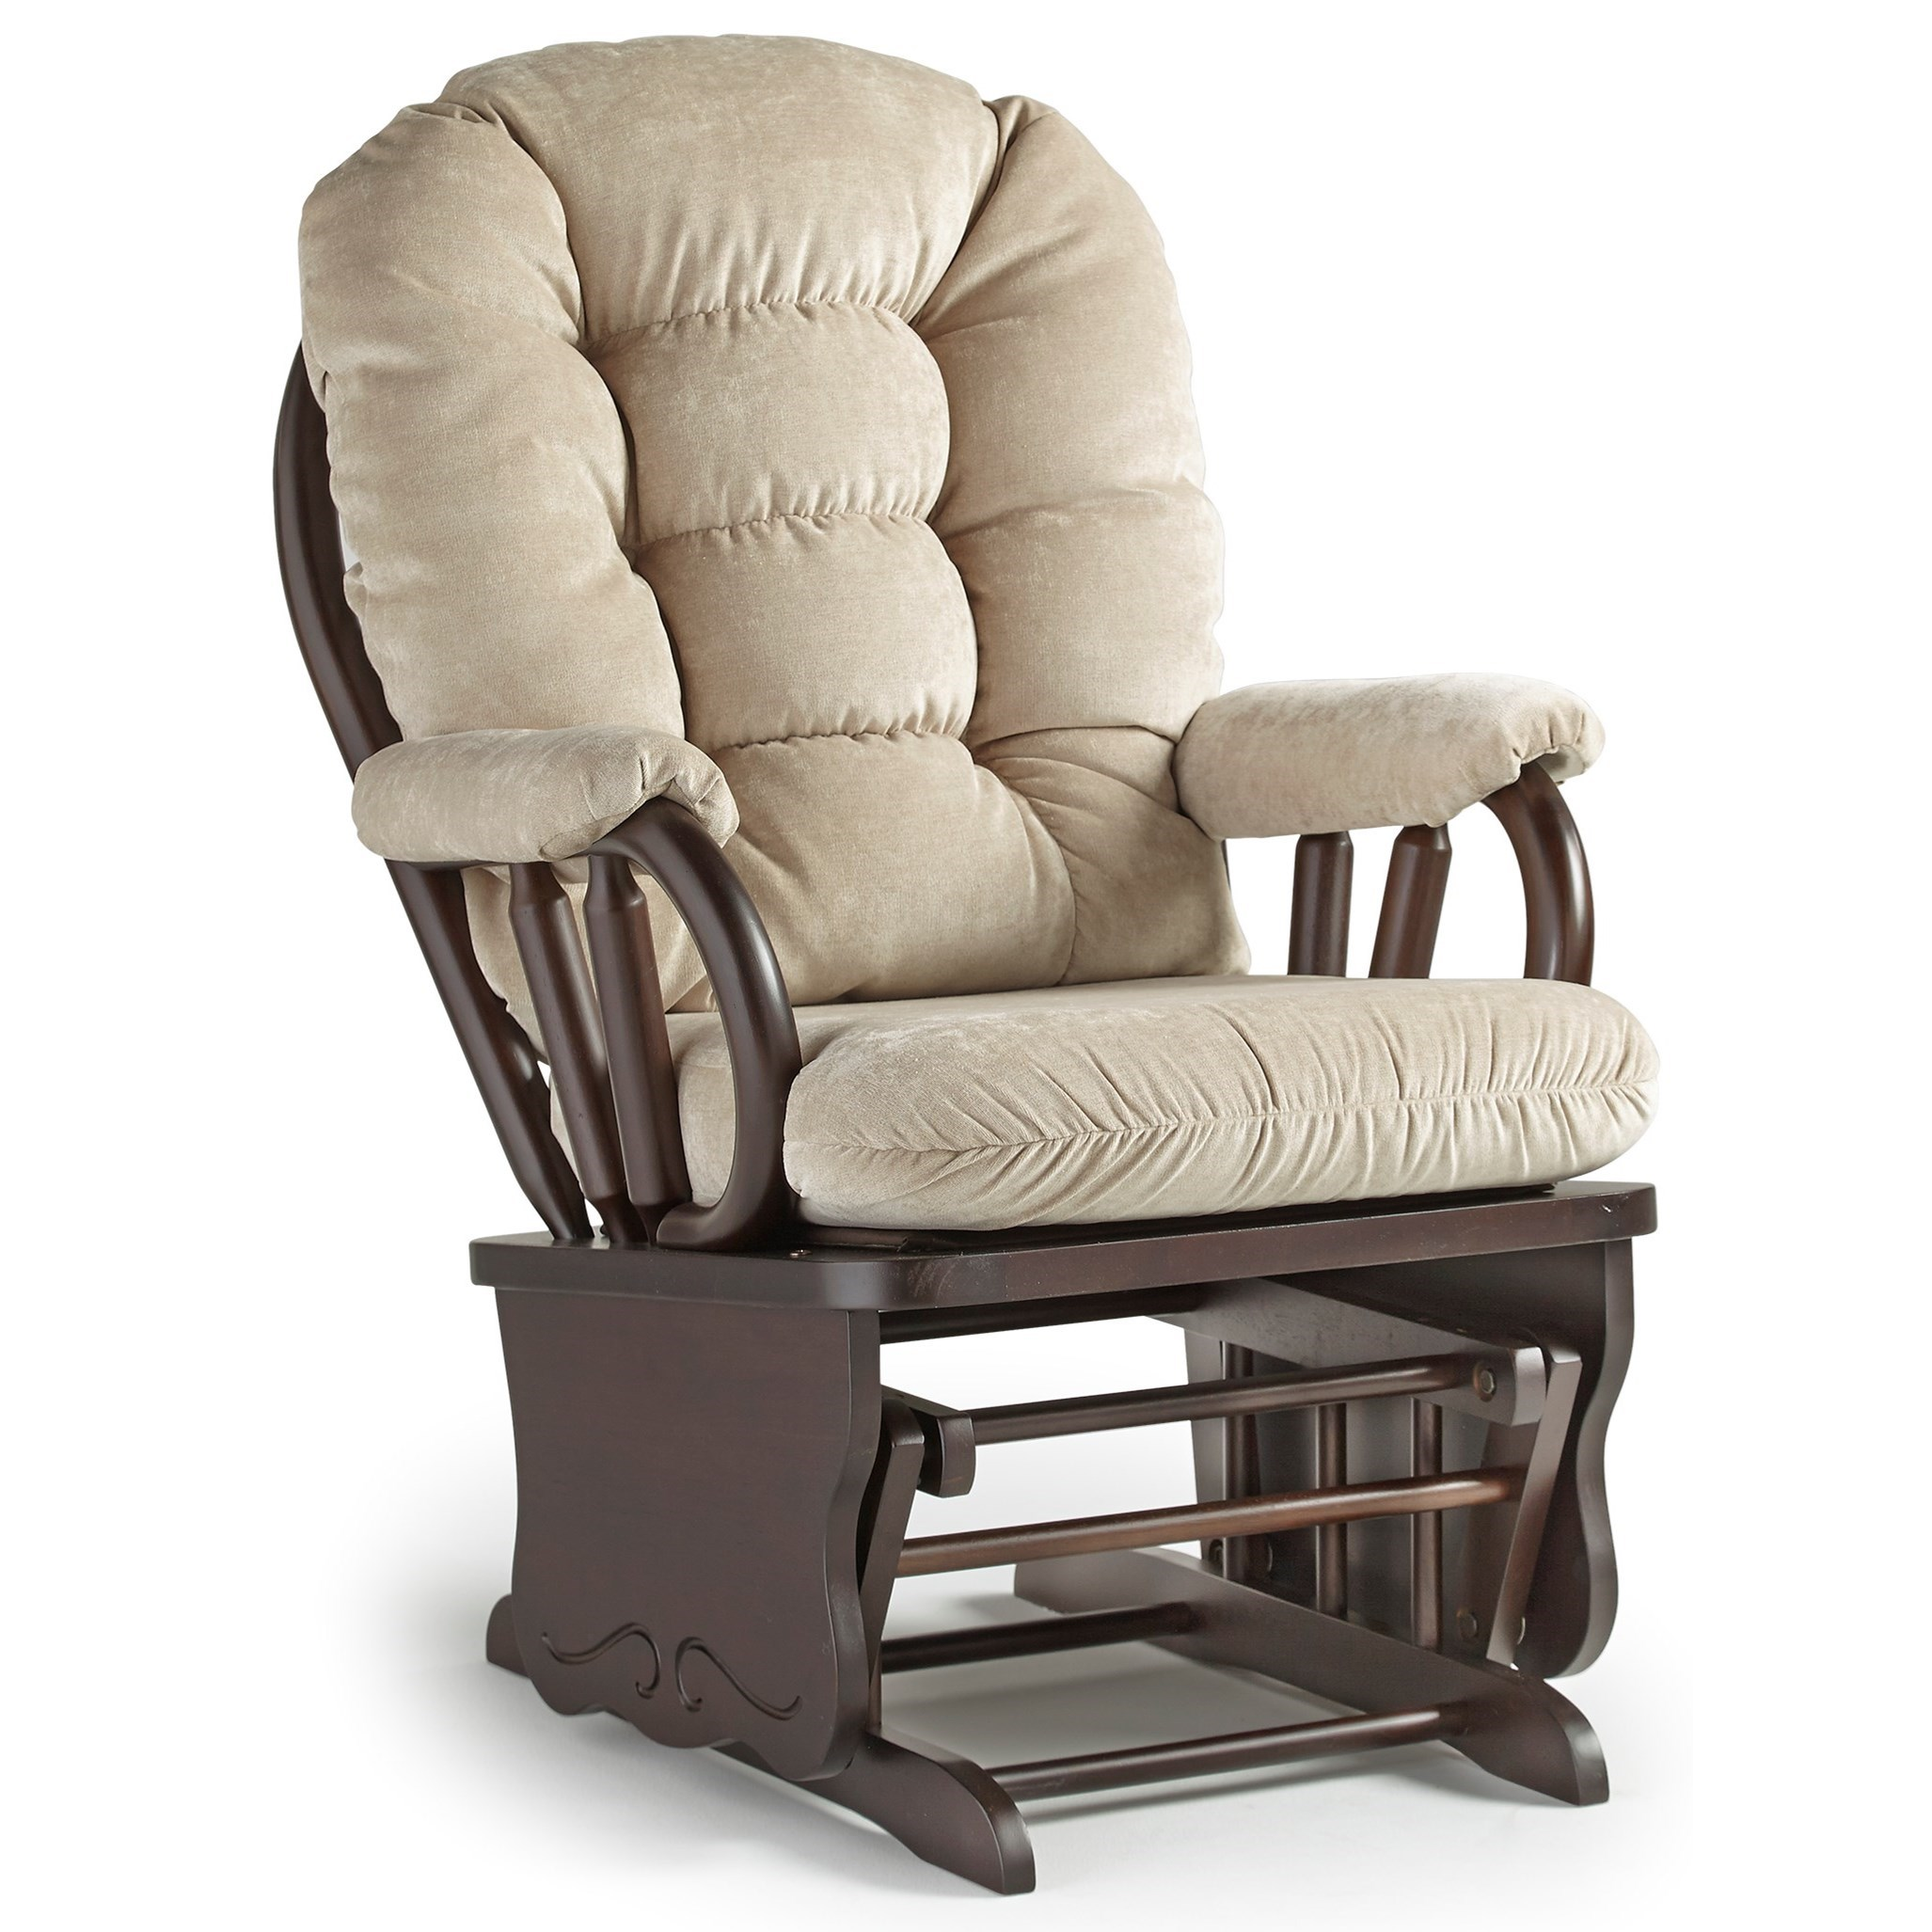 Best Living Room Furniture Brands: Best Home Furnishings Bedazzle C8107 Glide Rocker